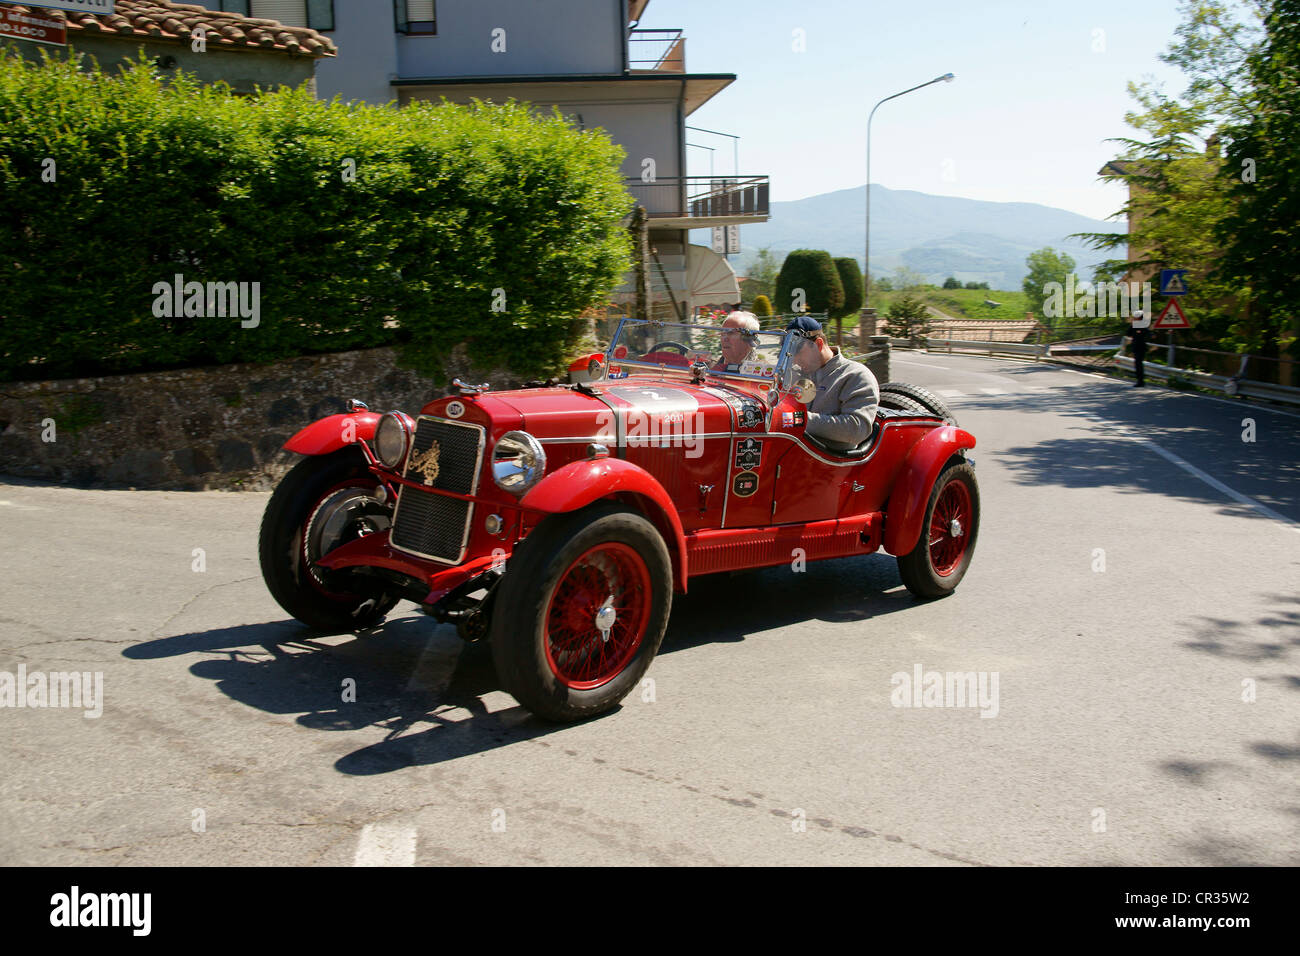 OM 665 Superba, 1929 3, Johann Georg Fendt, Corinna Fendt, vintage car race Mille Miglia or 1000 Miglia, Radicofani,Stock Photo